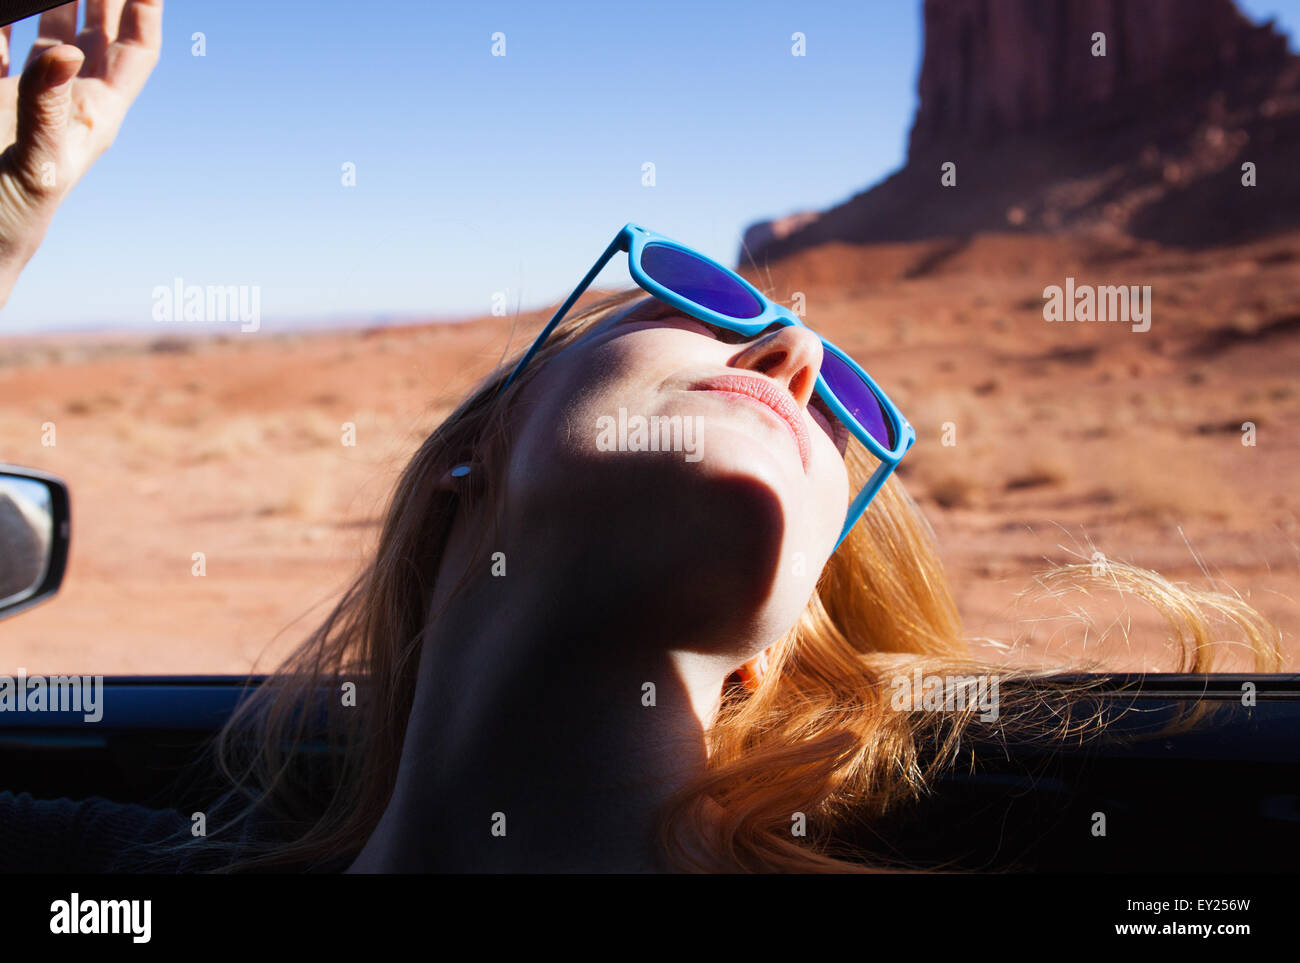 Woman leaning back out of car window, Monument Valley, Utah, USA - Stock Image